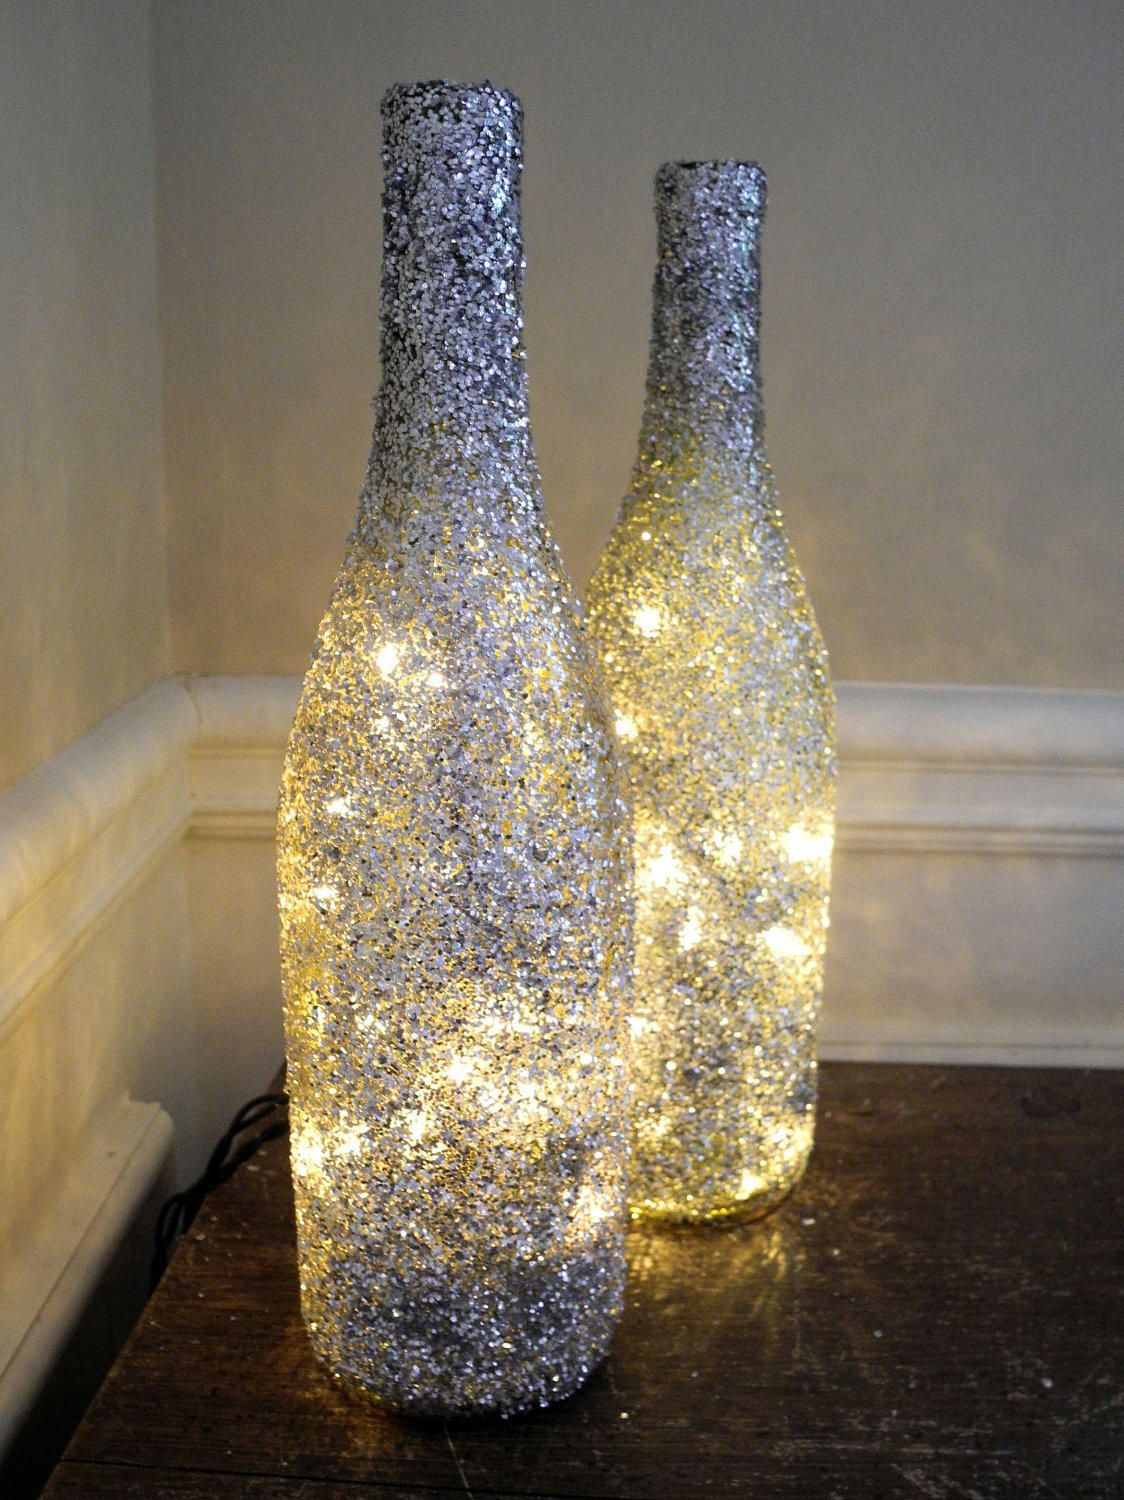 1 Glitter Lighted Wine Bottle Wine Bottle Lamp Bar by DazzleMePink from DazzleMePink on Etsy. Saved to Things I want as gifts. #glitter #want #lights #wine #cute #love #pretty #sparkles.